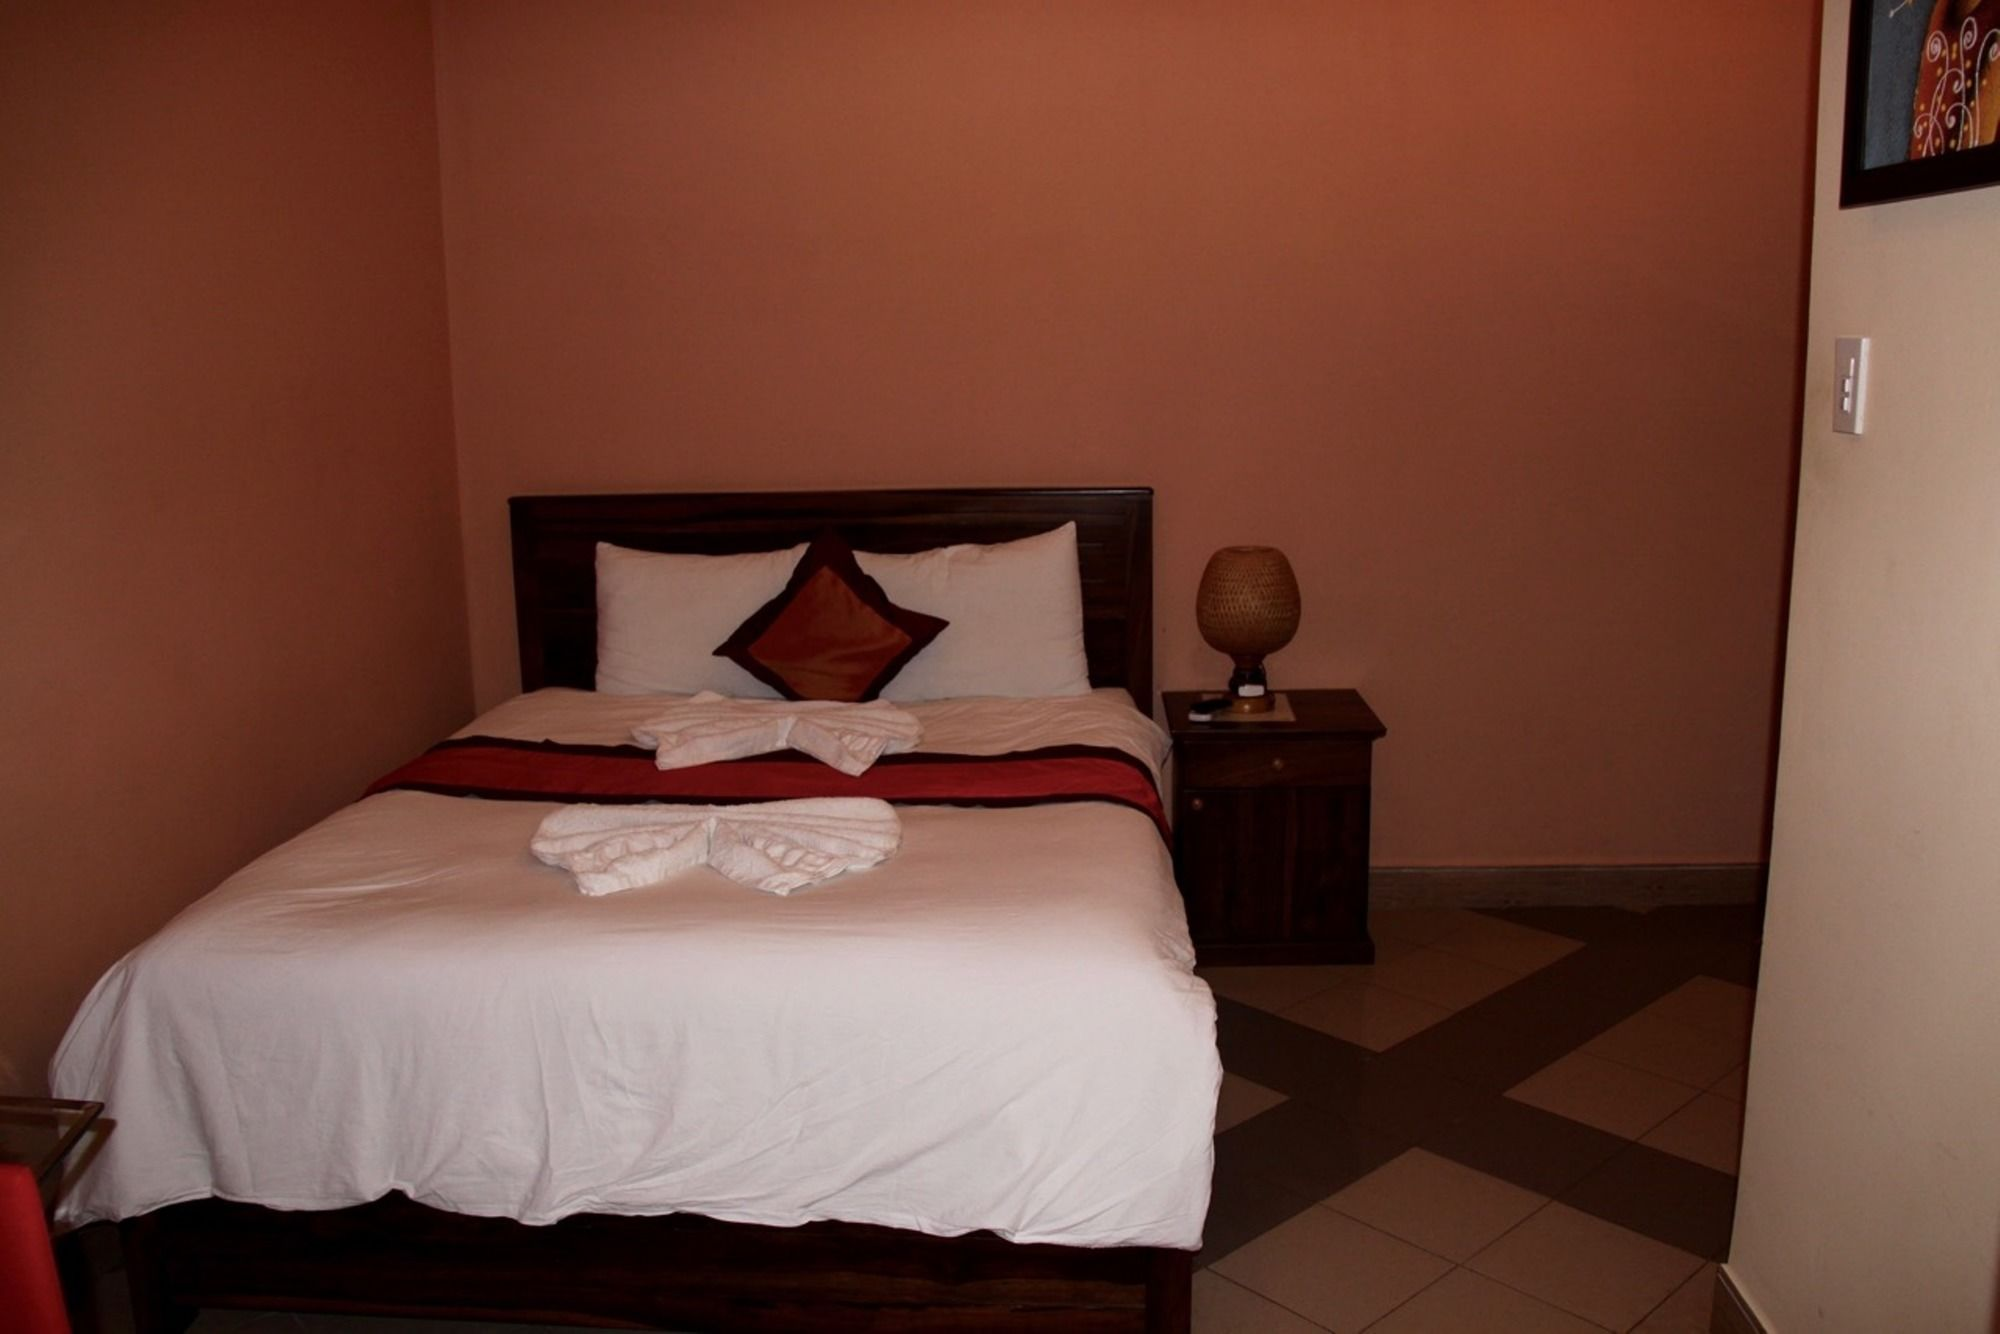 Gallery image of Xin Chao Hotel